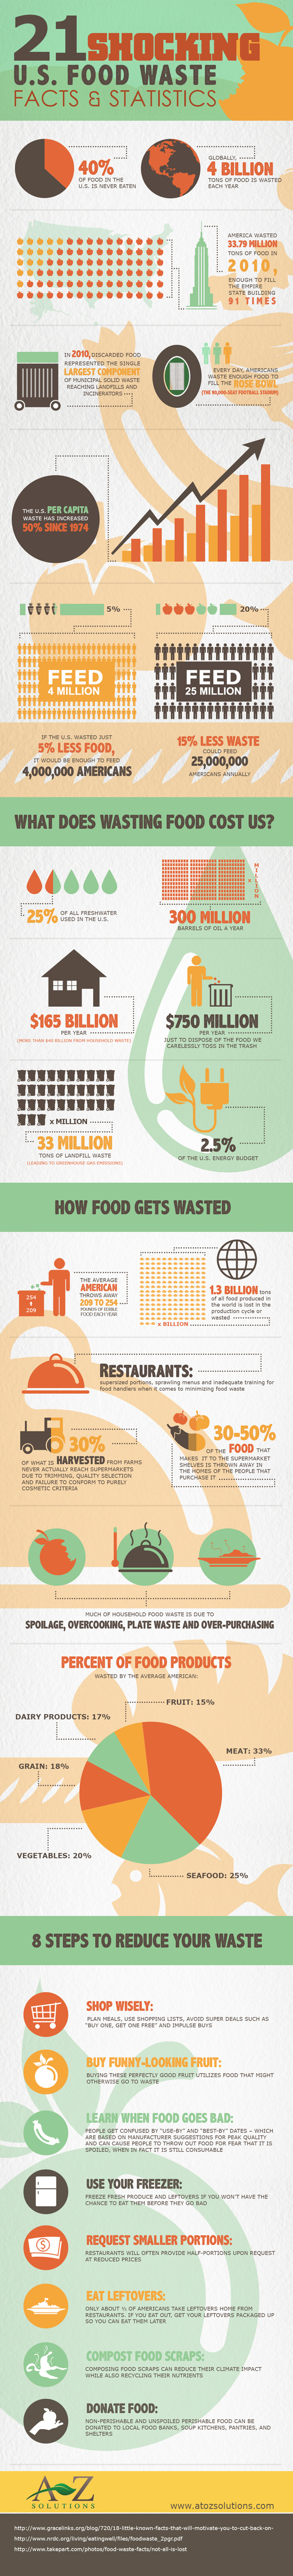 21-shocking-us-food-waste-facts--statistics1